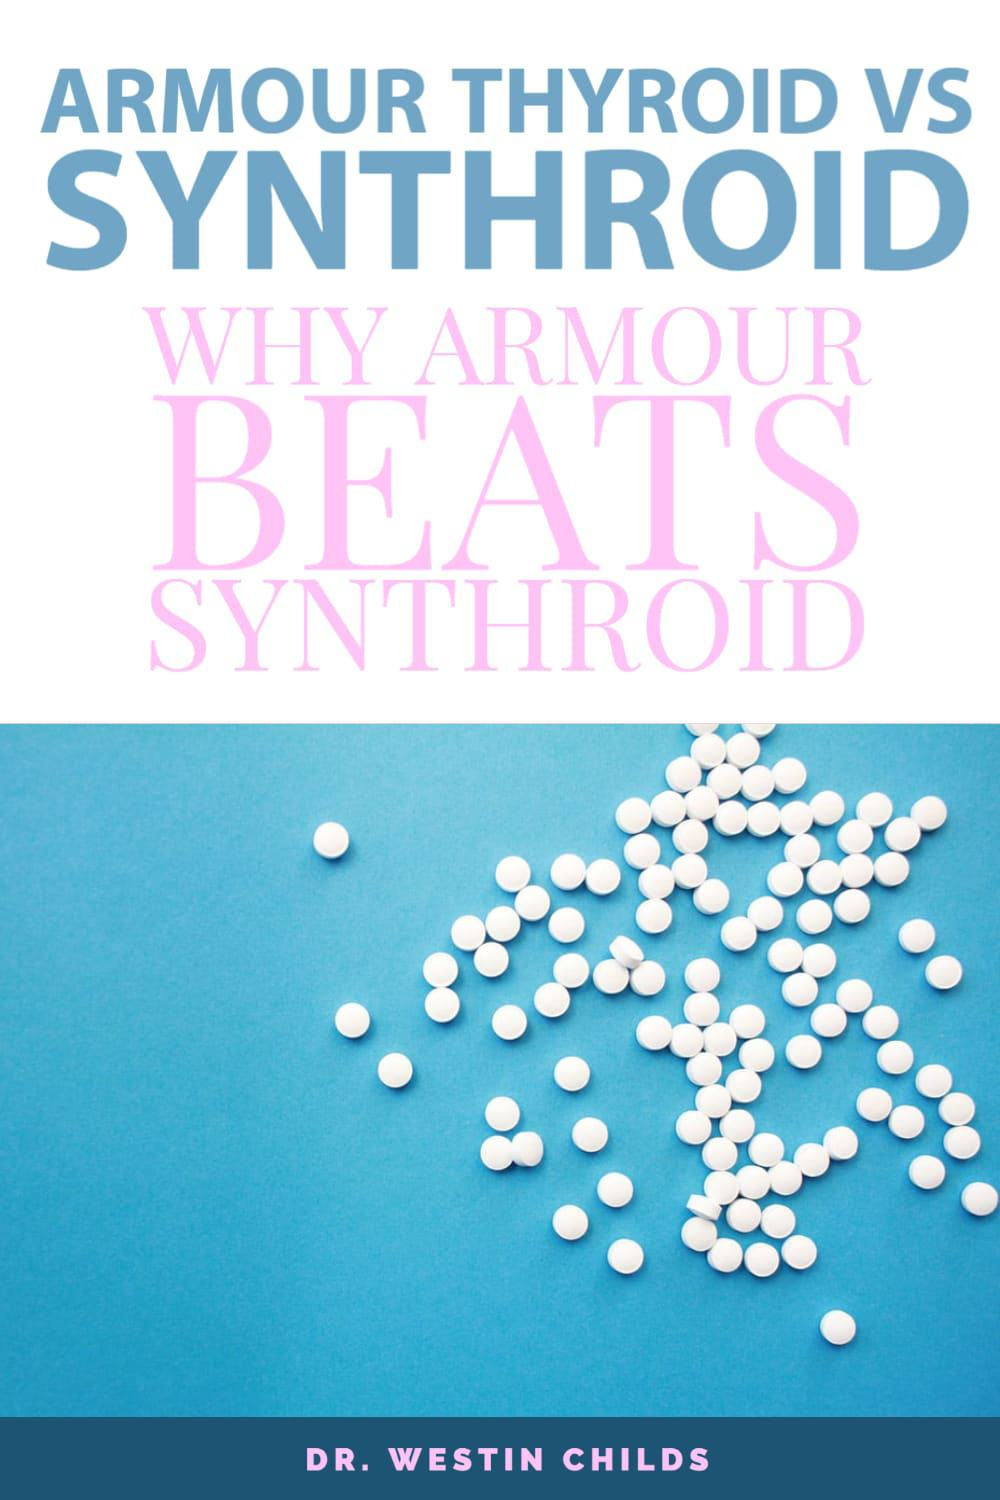 armour thyroid vs synthroid